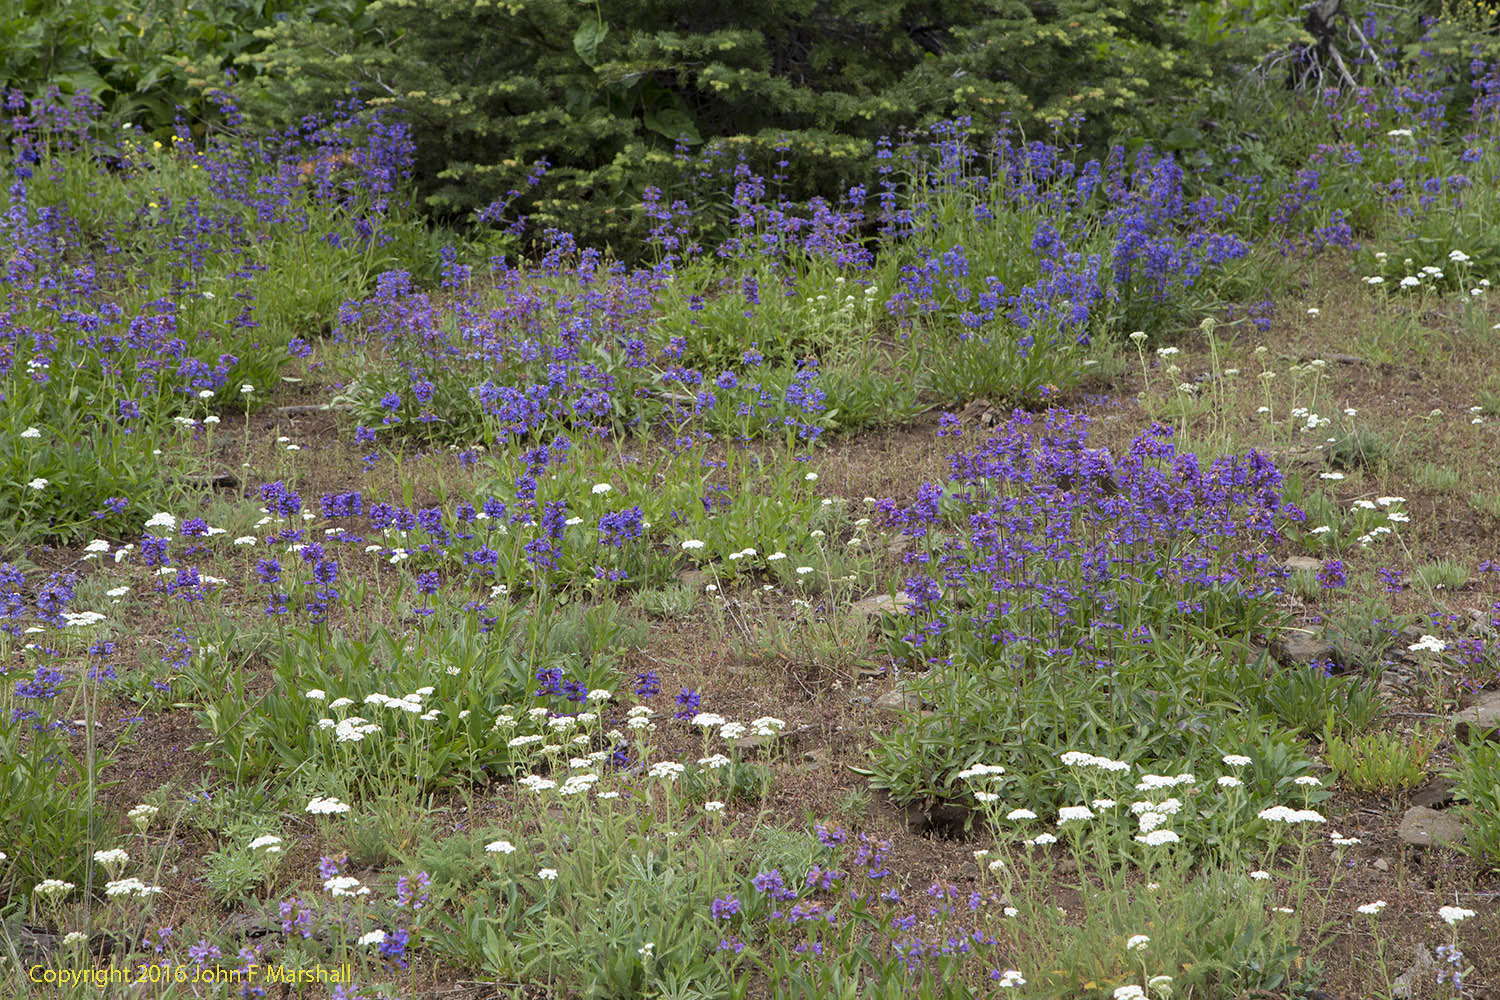 Penstemon and yarrow growing on lithosol soils in the Blue Mountains, Umatilla National Forest.